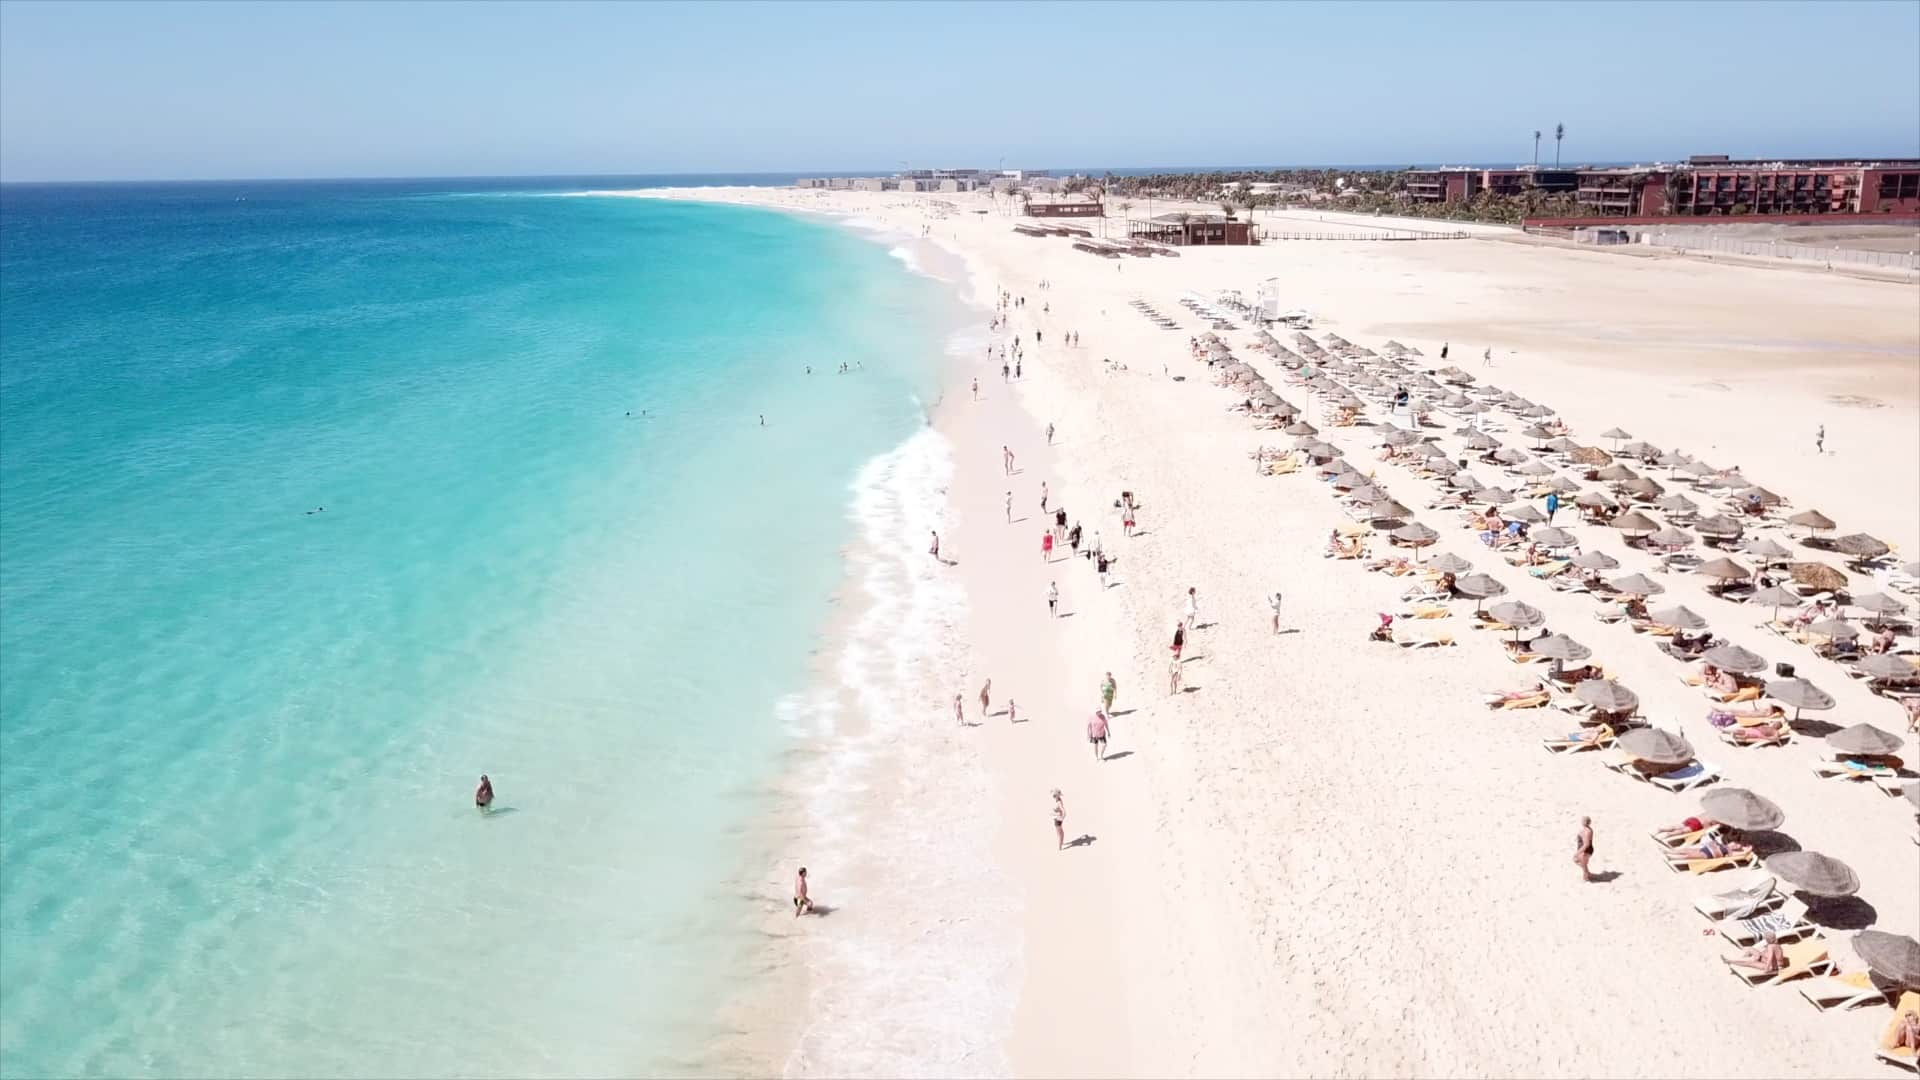 Check Out This Awesome Panoramic Kite >> Cape Verde Islands 25 Best Things To Do In Sal In 2019 Don T